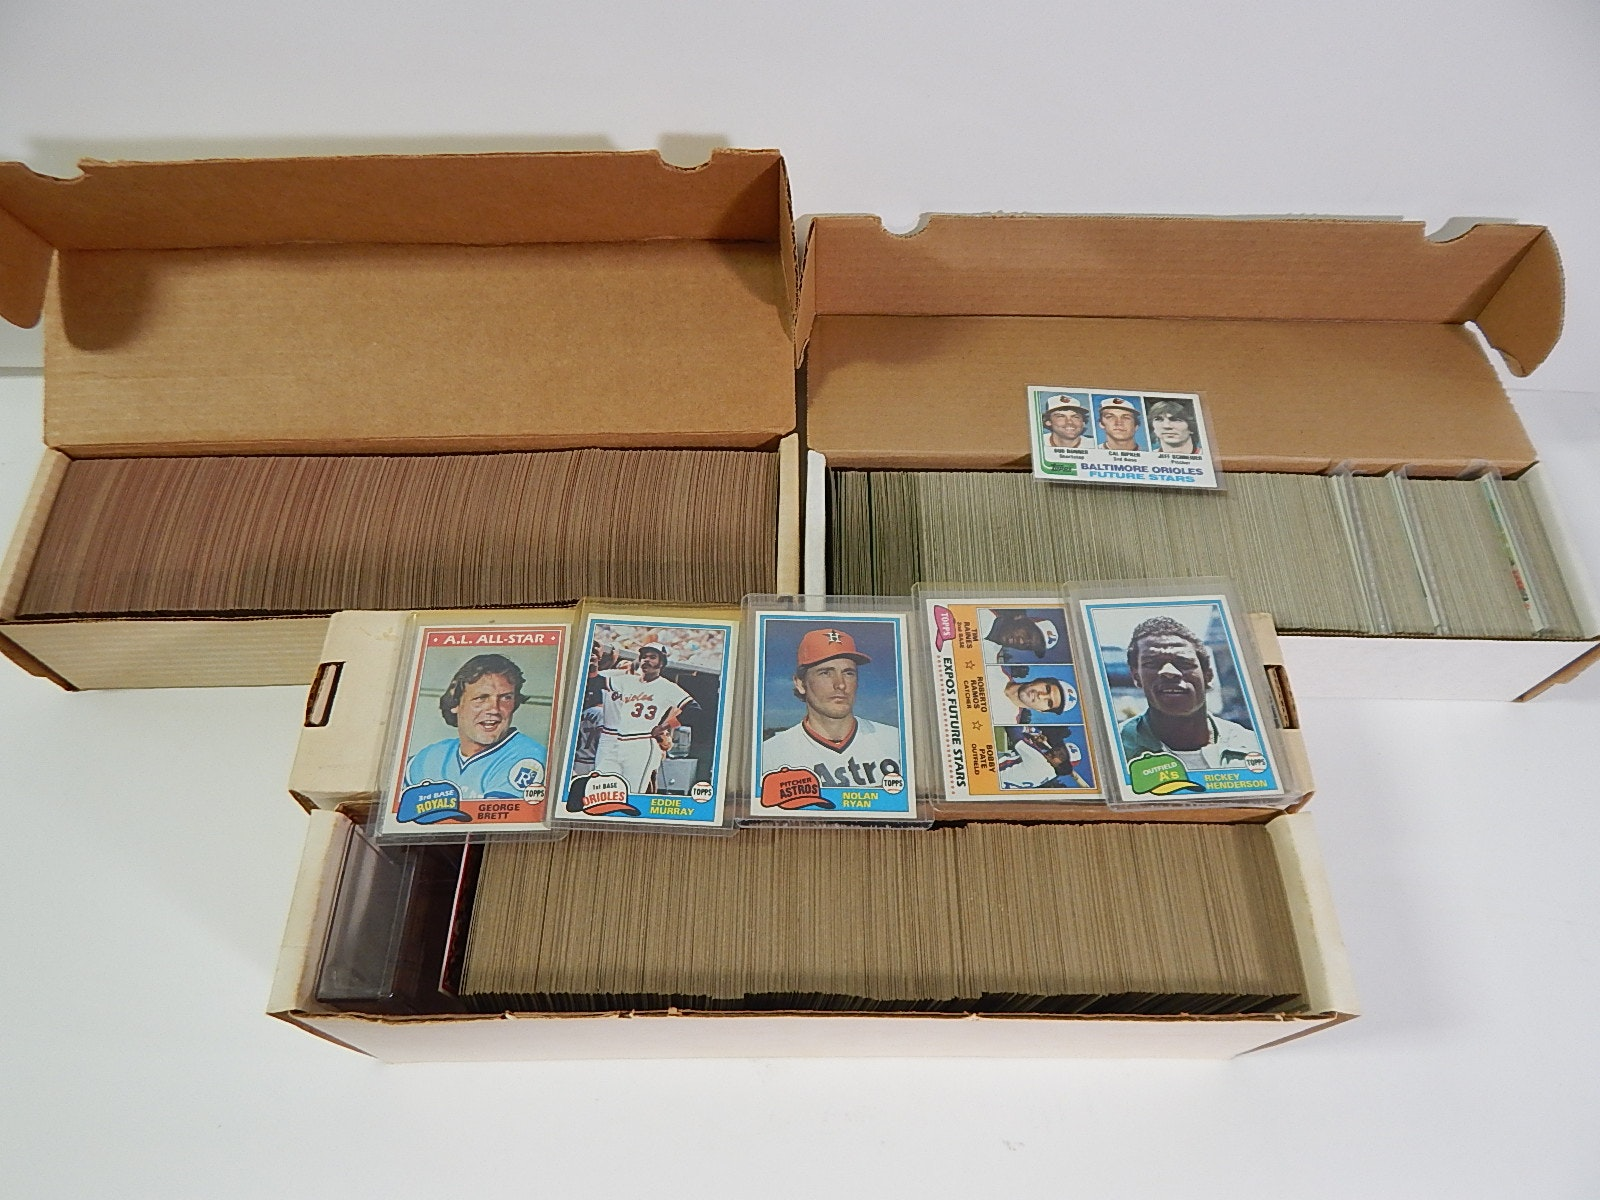 Topps Baseball Card Sets from 1981, 1982, and 1986